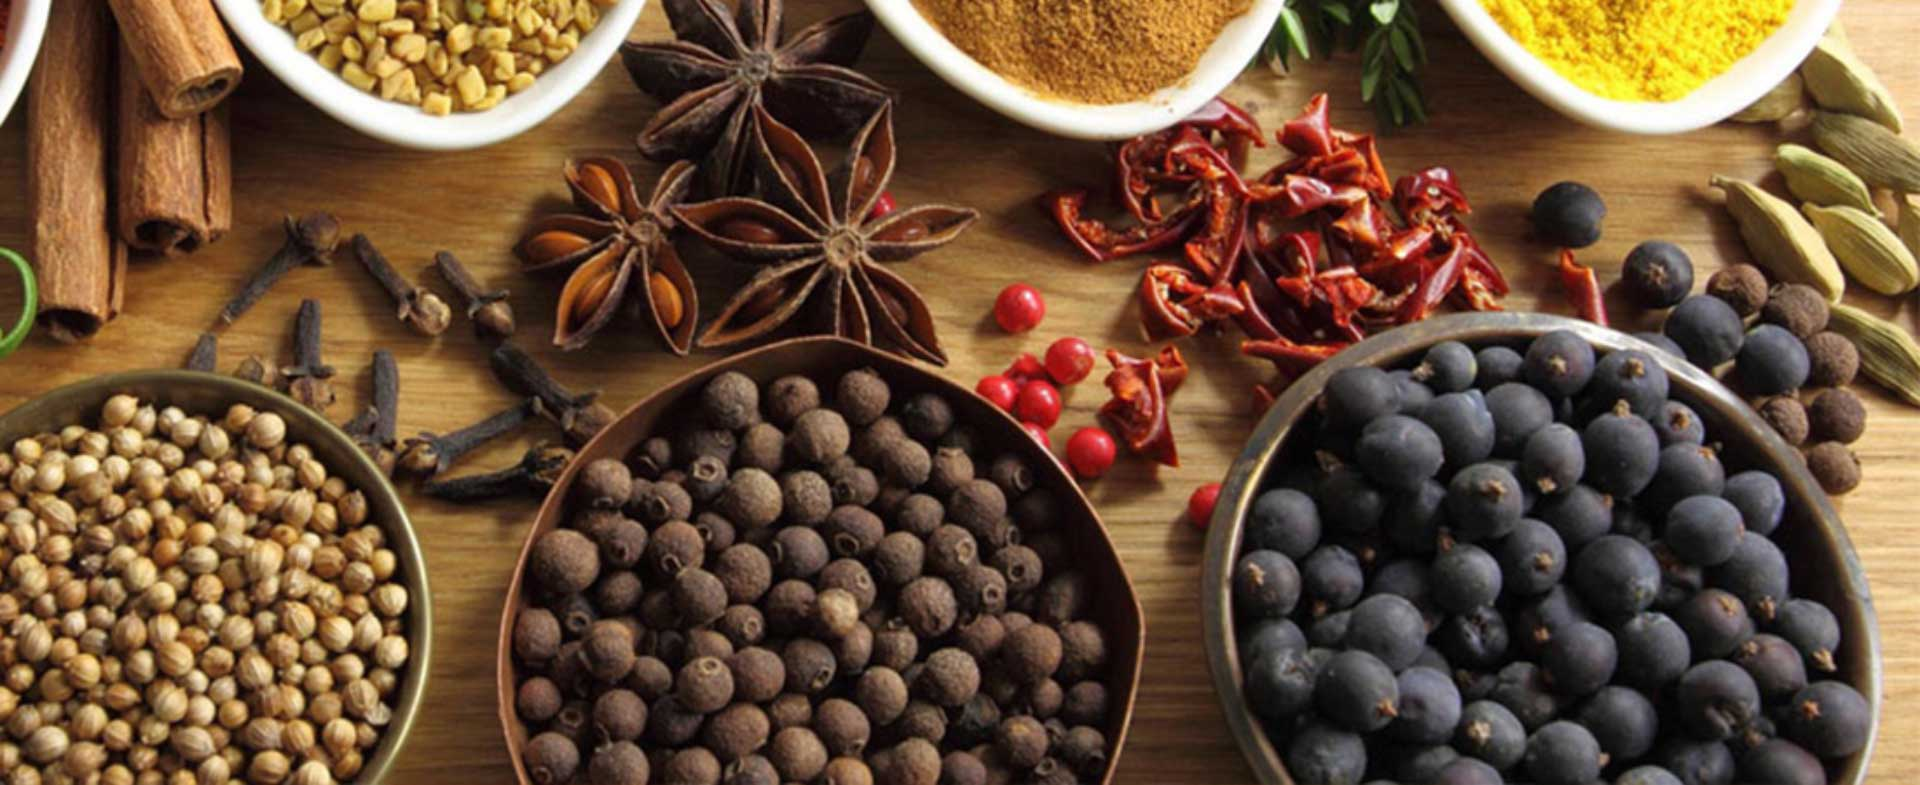 red chilli seeds wholesale supplier India, Indian spices wholesale supplier India